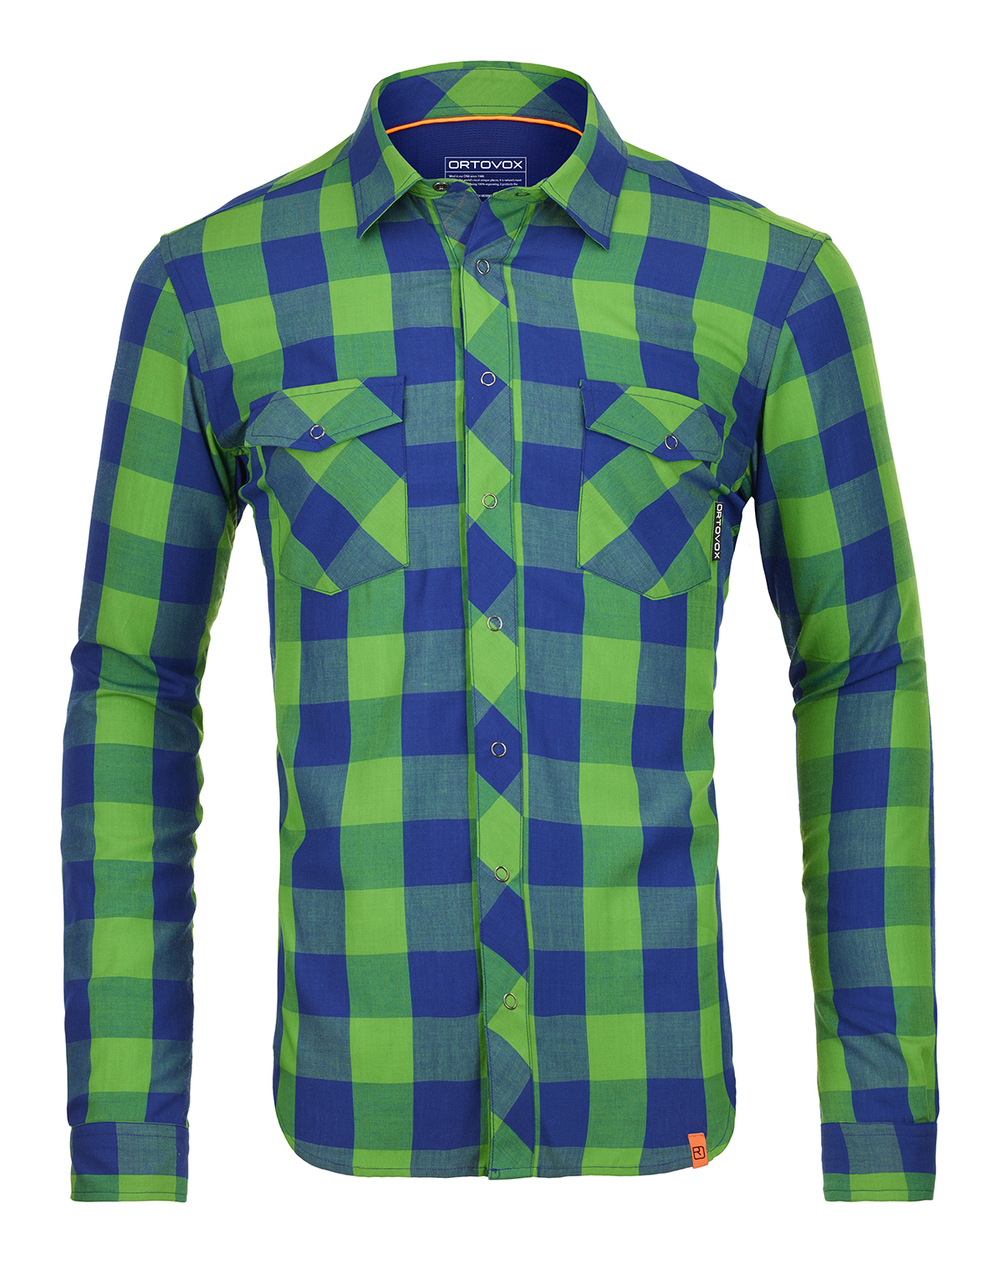 Ortovox Rock N Wool shirt.  Don't be fooled by the collar, this shirt is built for pure badassery -- high altitude, high speed, high exposure. LINK